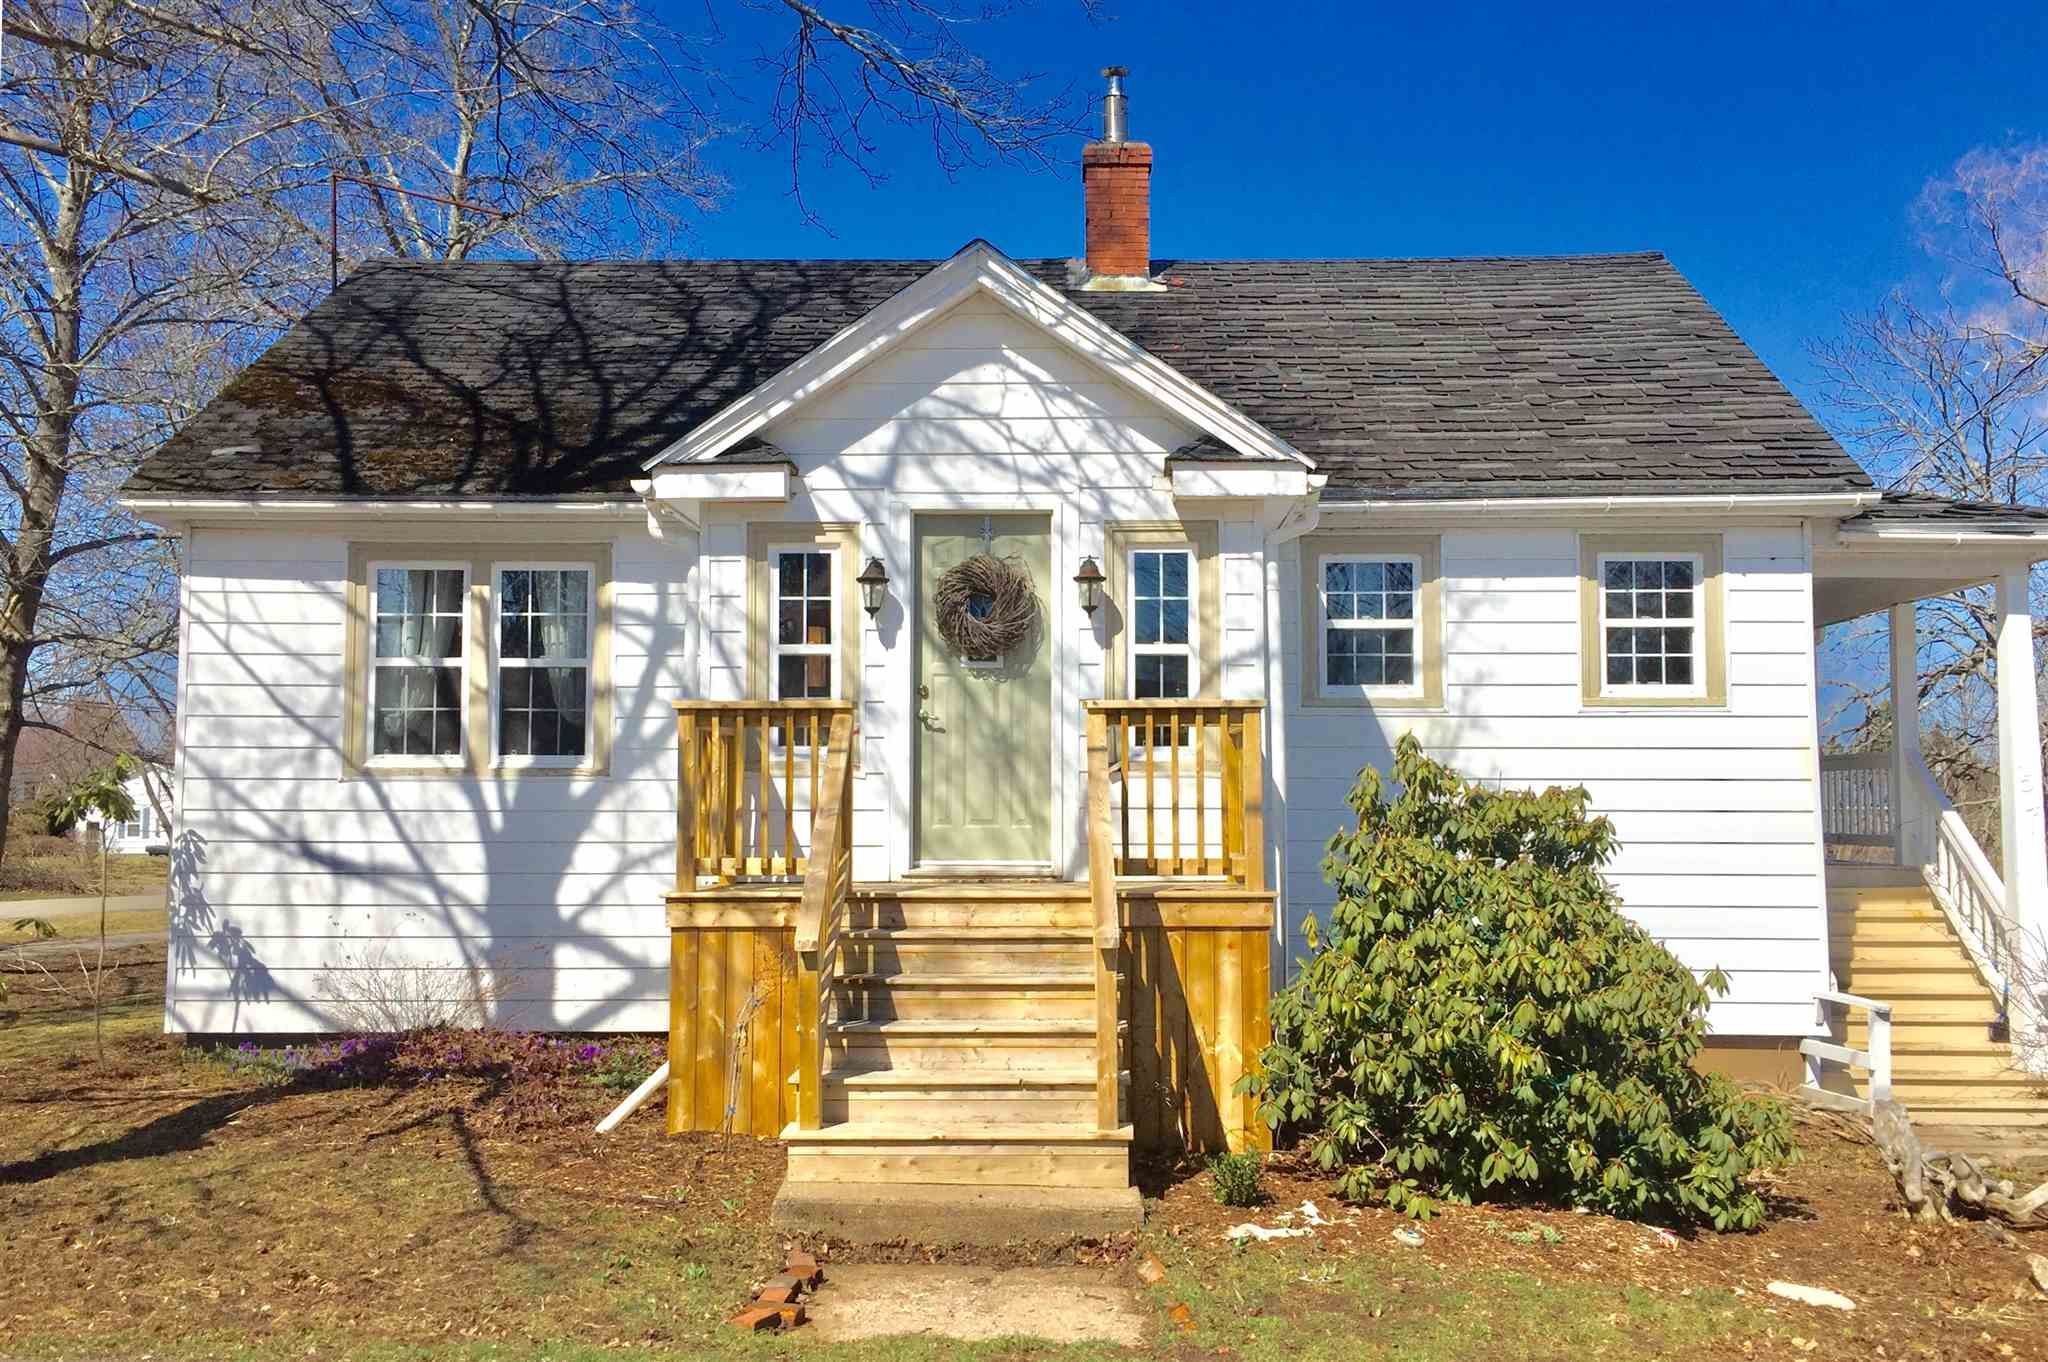 Main Photo: 154 Cottage Street in Berwick: 404-Kings County Residential for sale (Annapolis Valley)  : MLS®# 202107375